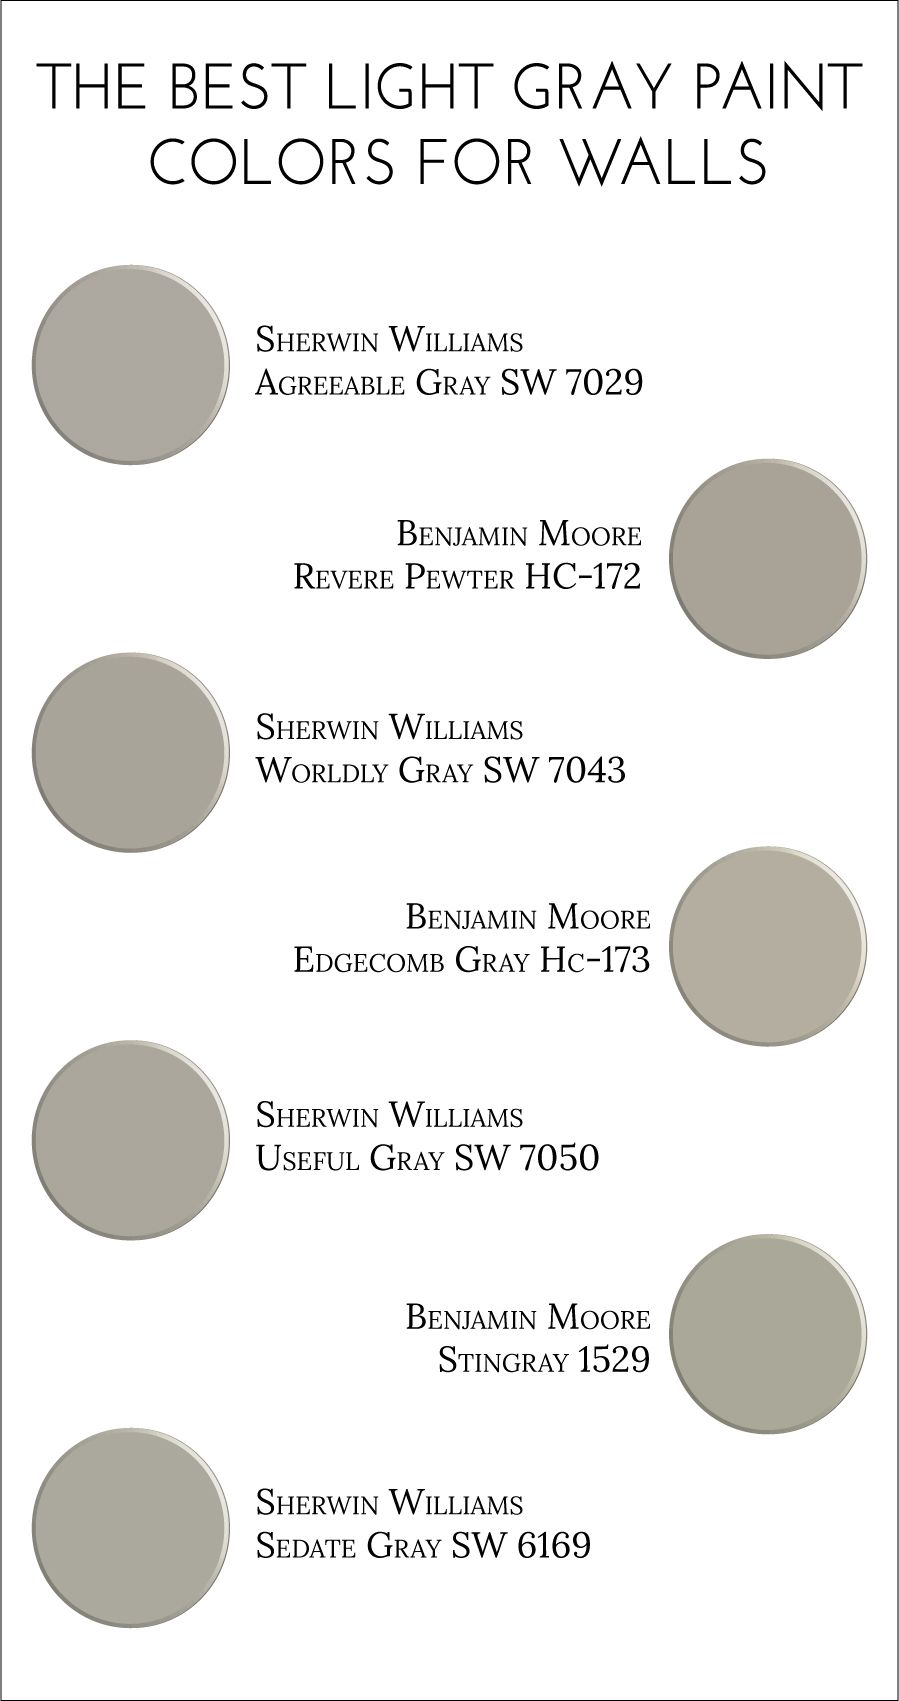 The best light gray paint colors for walls light grey paint colors light grey paint and light - Designer gray paint color ...